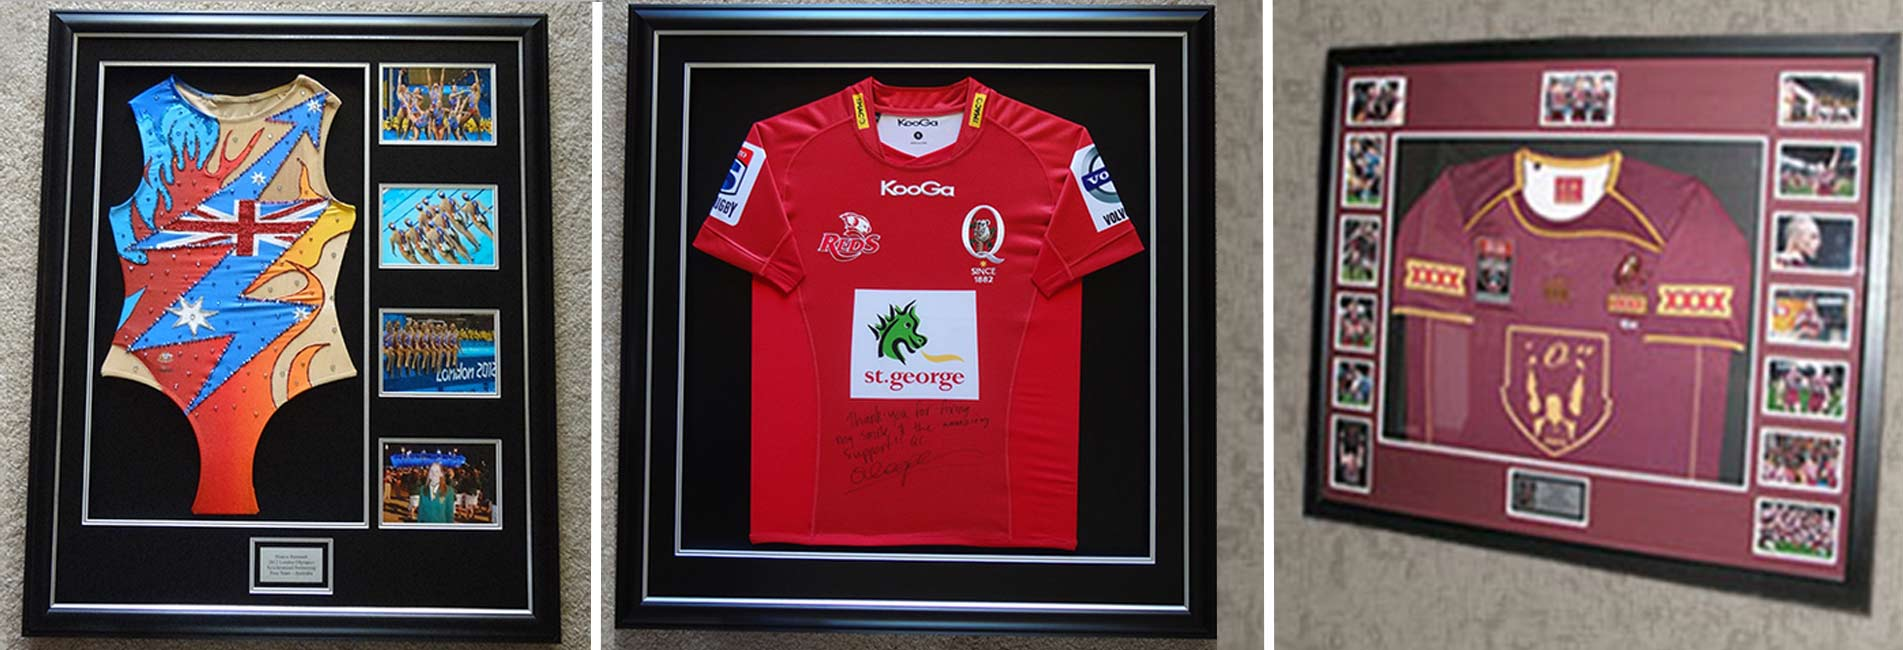 Image result for What items are to be involved in a business of memorabilia framing?